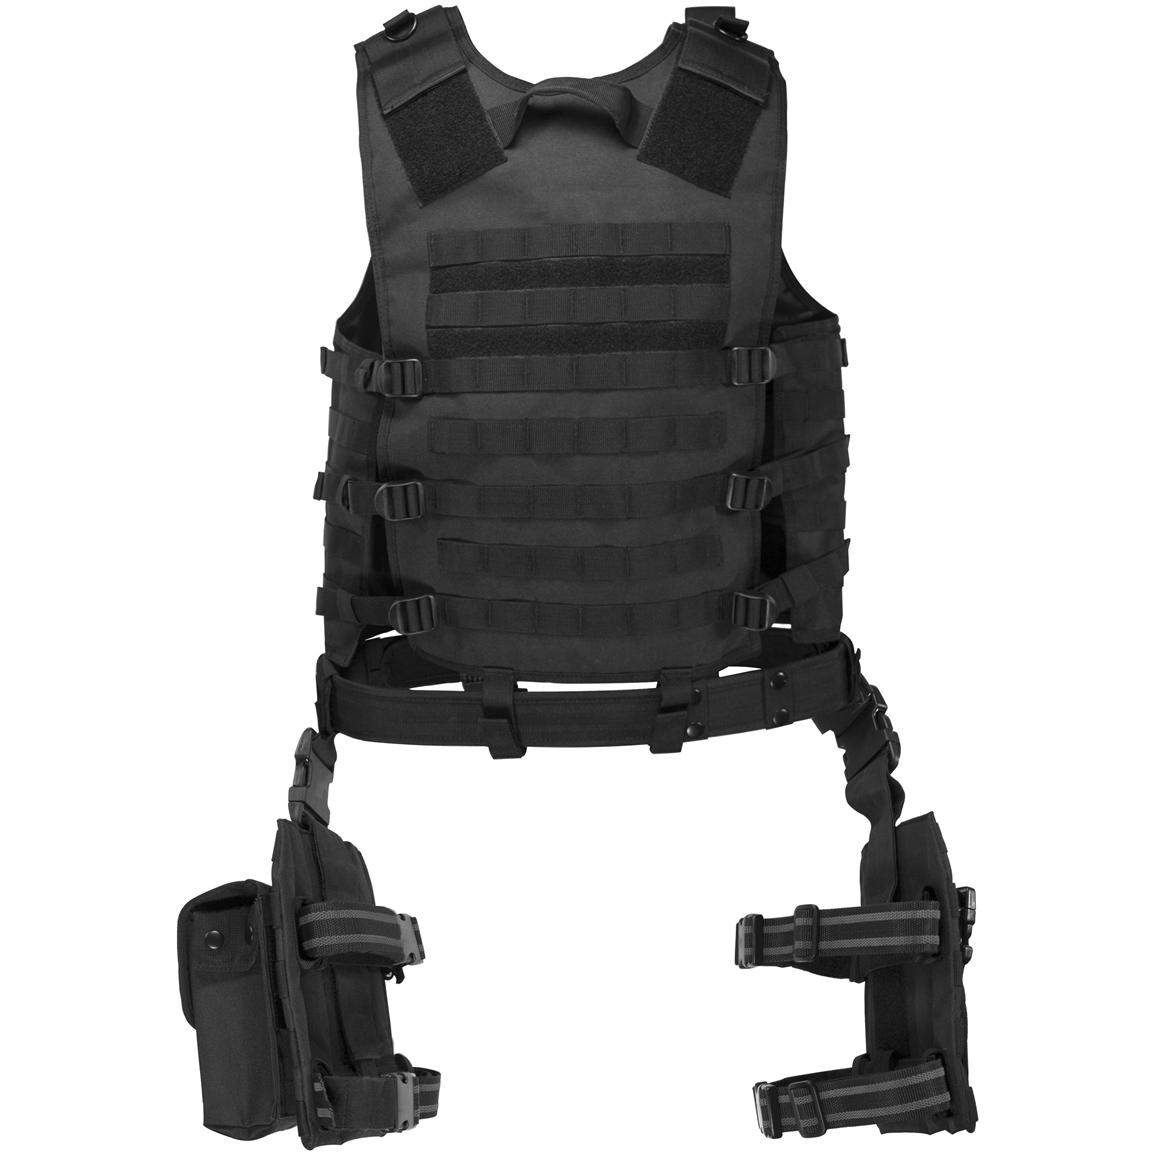 Barska® Loaded Gear™ VX-100 Tactical Vest and Leg Platform, Back View